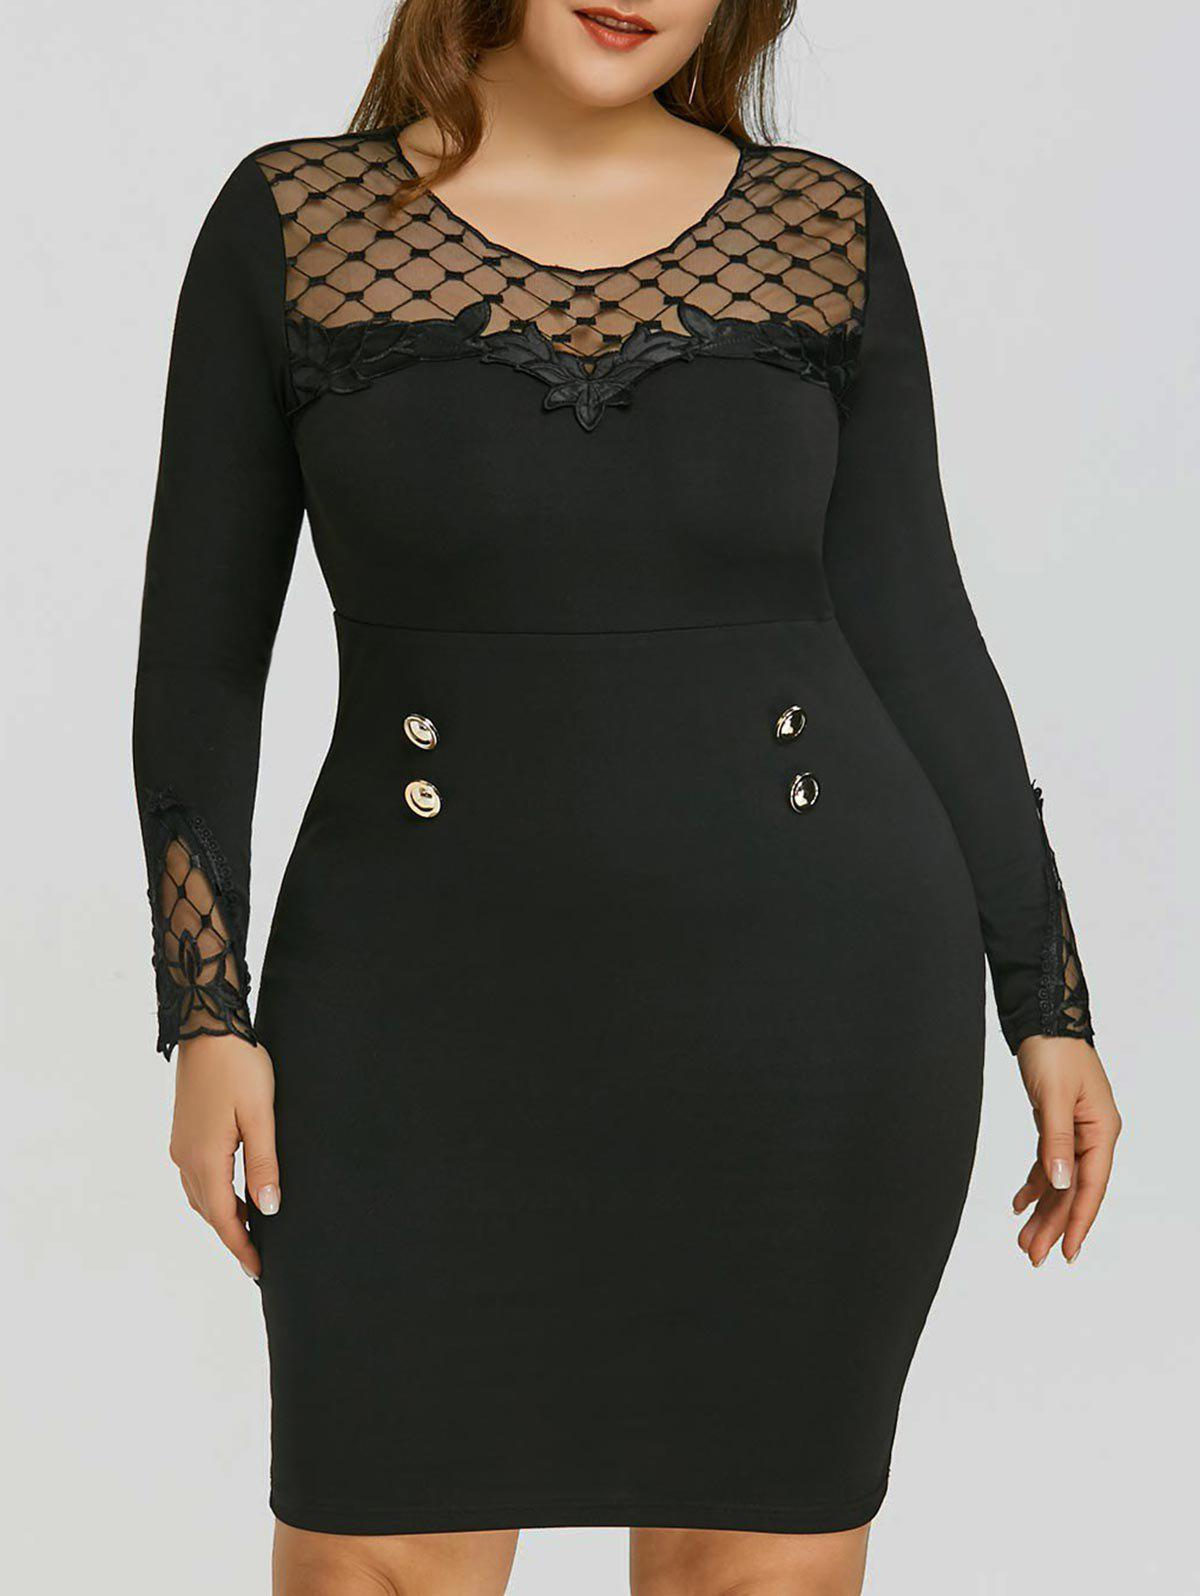 Plus Size Mesh Panel Applique Dress - BLACK 3XL